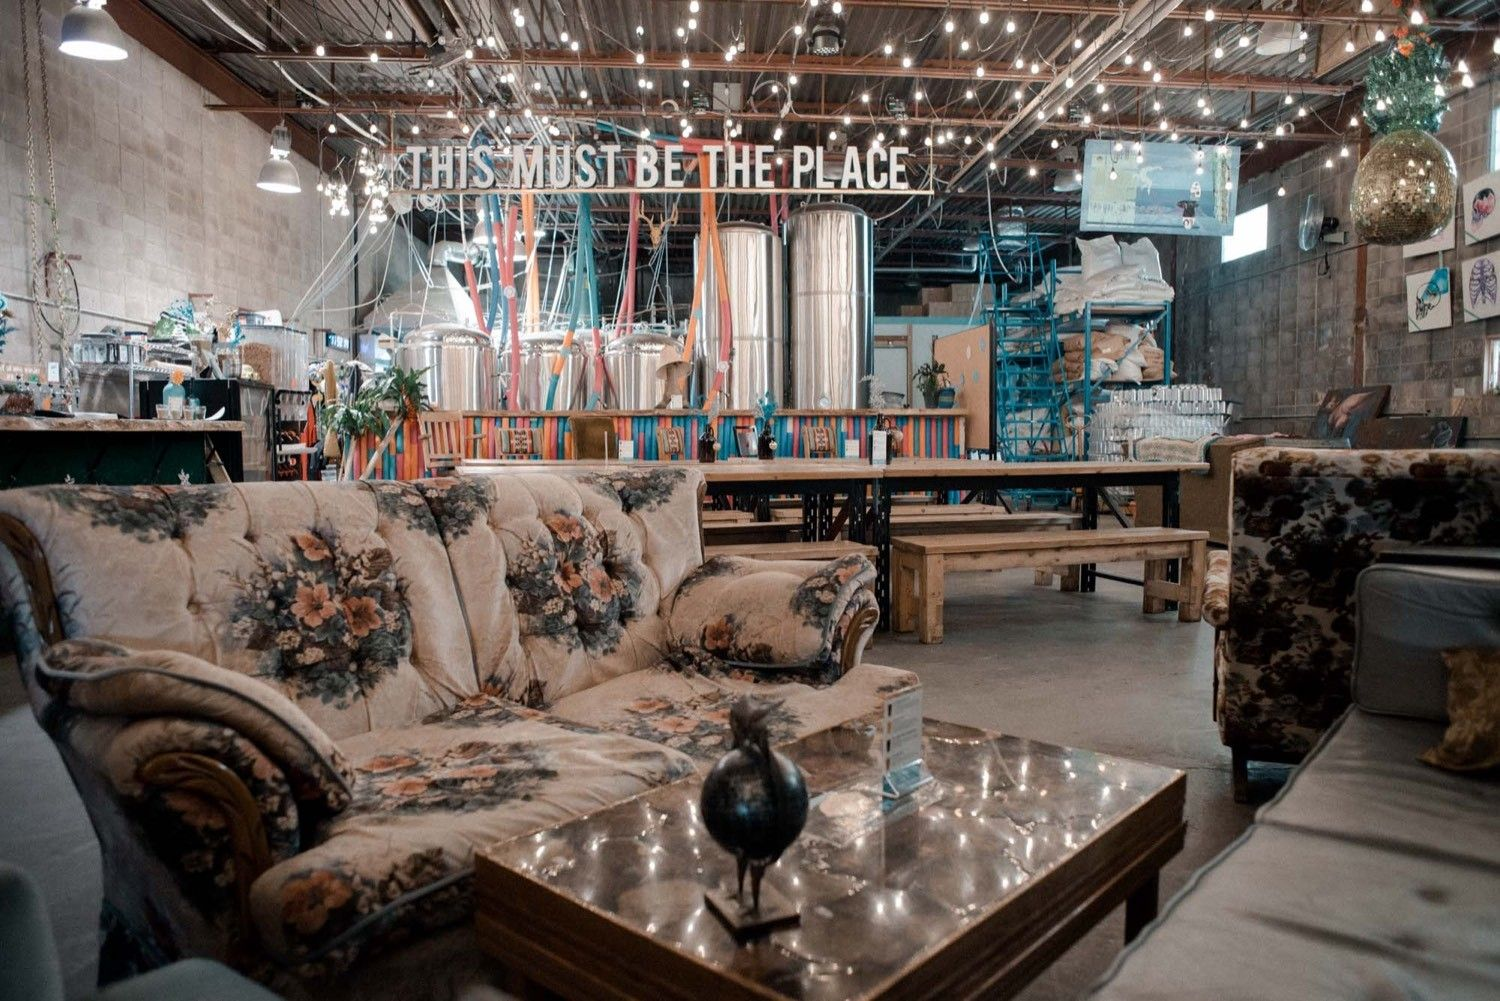 Quirky, vintage vibes at Cold Garden Photo by Alana Willerton